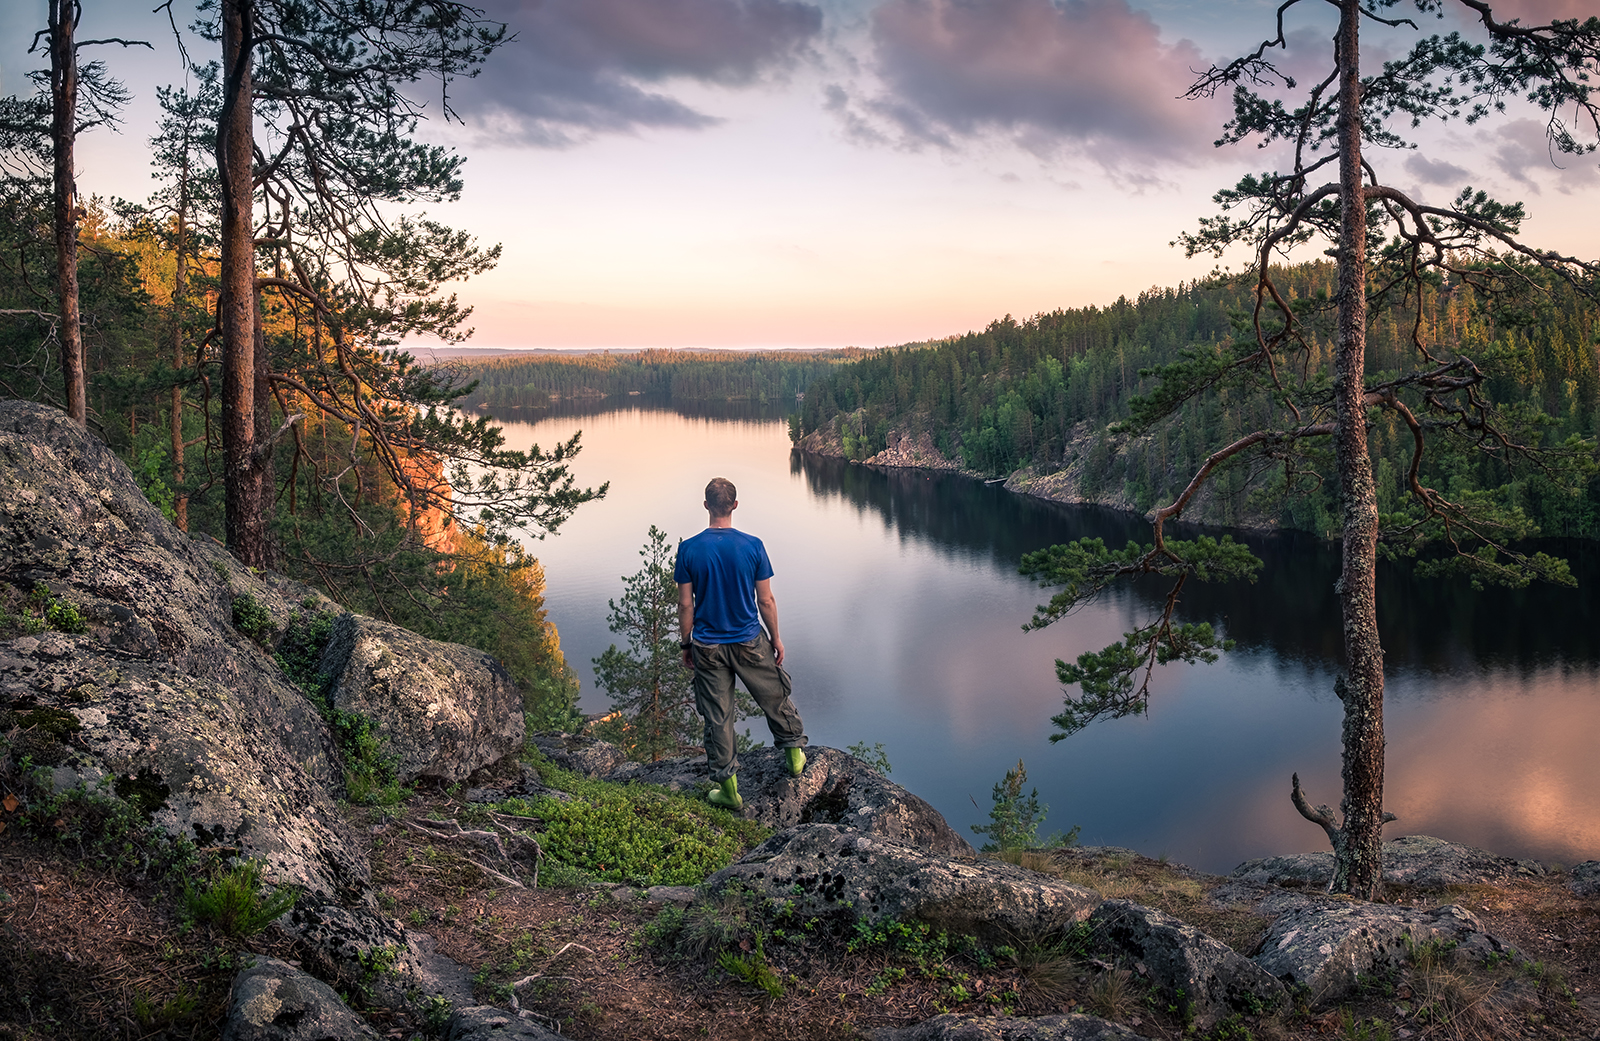 A total of 75 percent of Finland's area is covered by forest. Photo: Jani Riekkinen